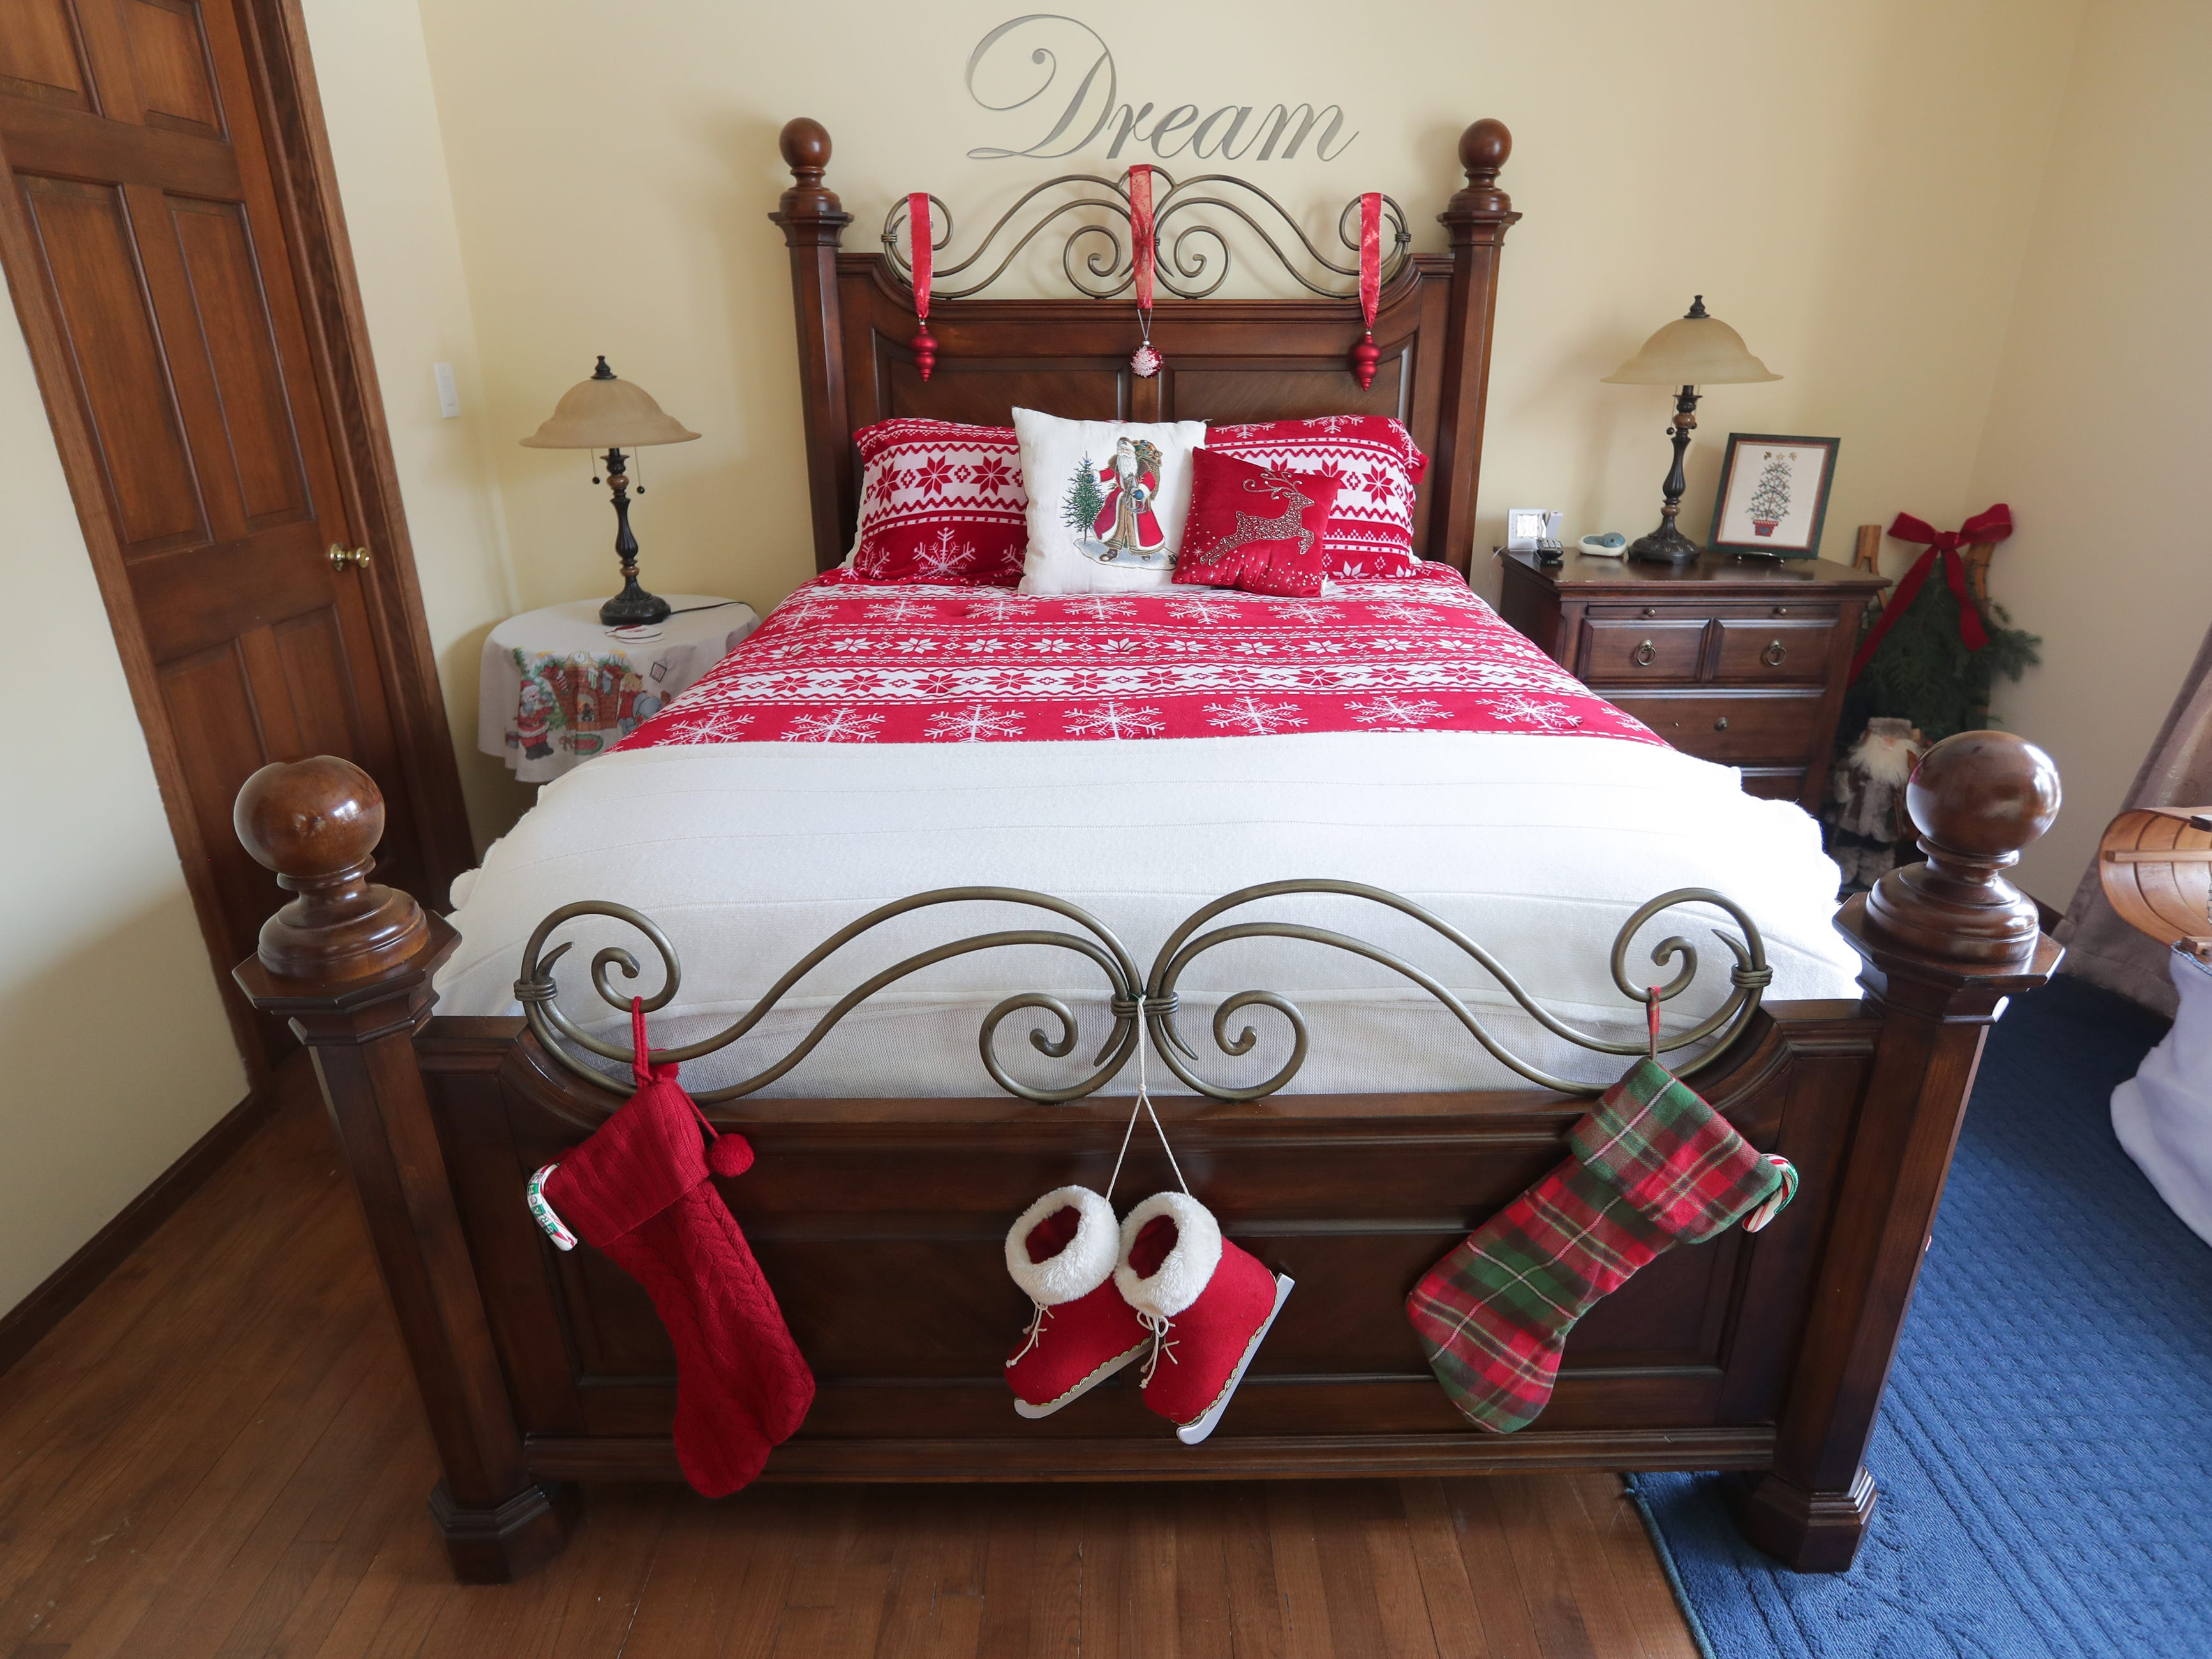 A bed with Christmas blankets, pillows and other decorations is featured in the guest bedroom on the first floor.